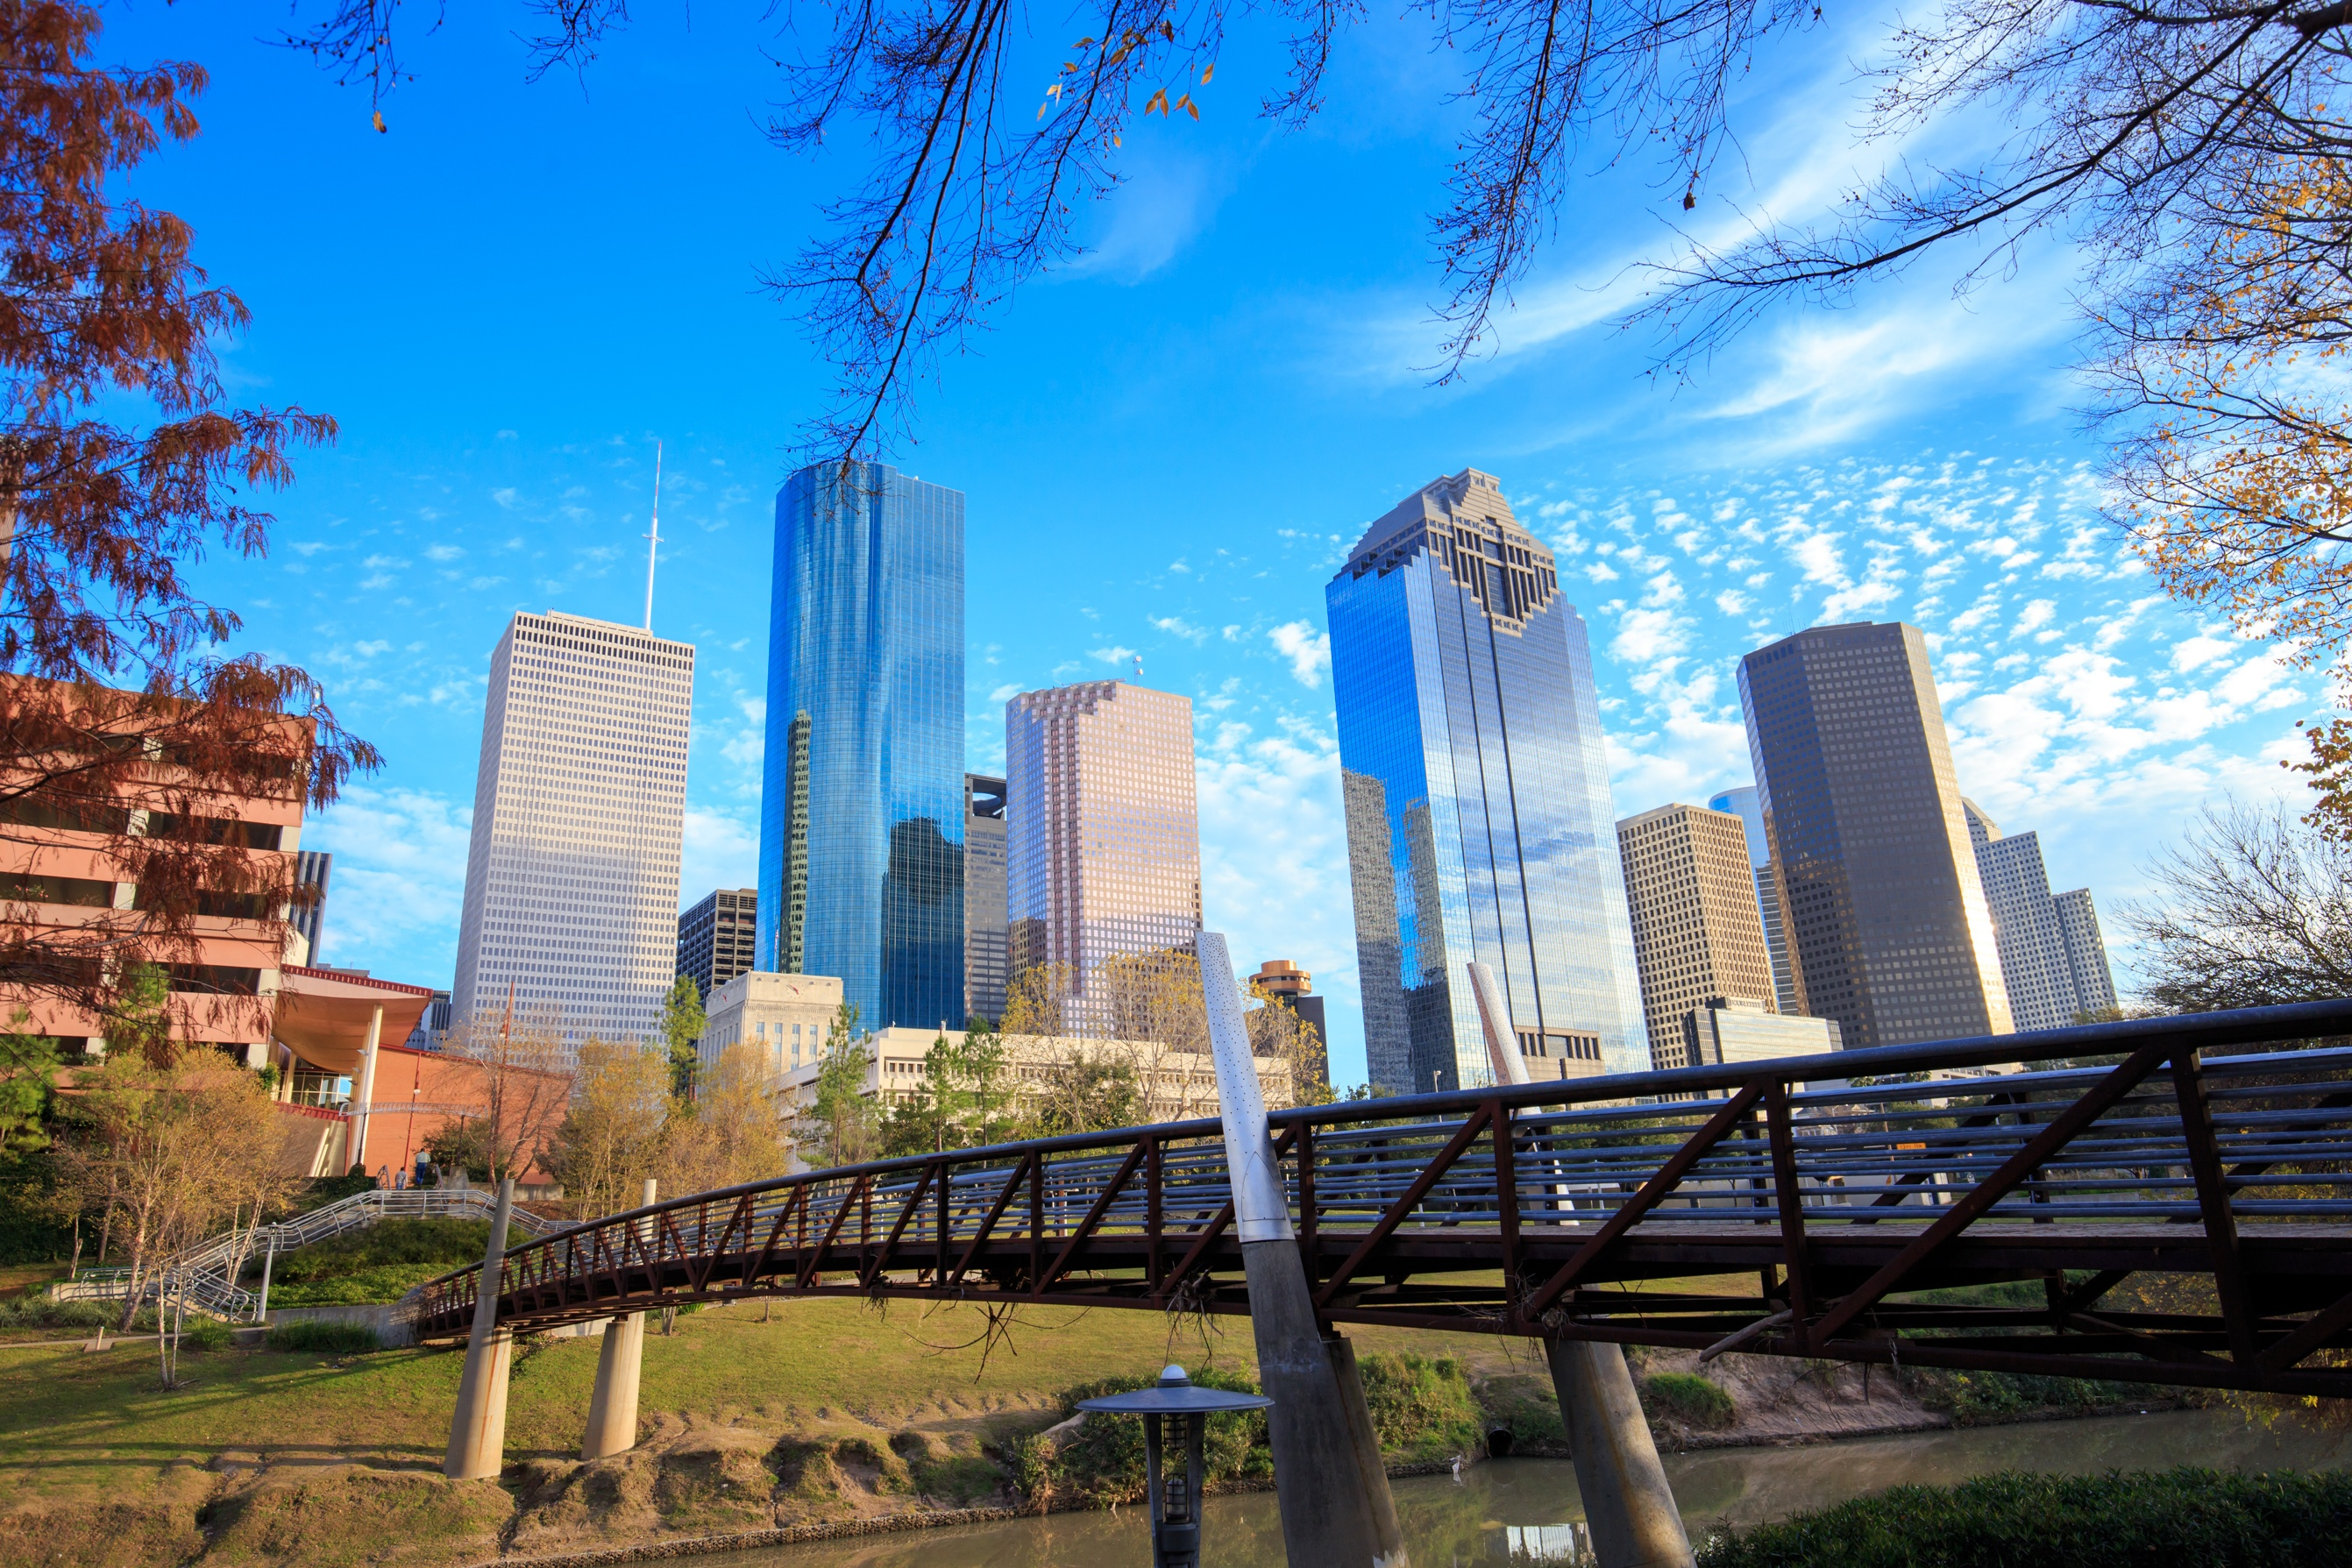 Downtown Houston Office Build Out: What Permits Do You Need?